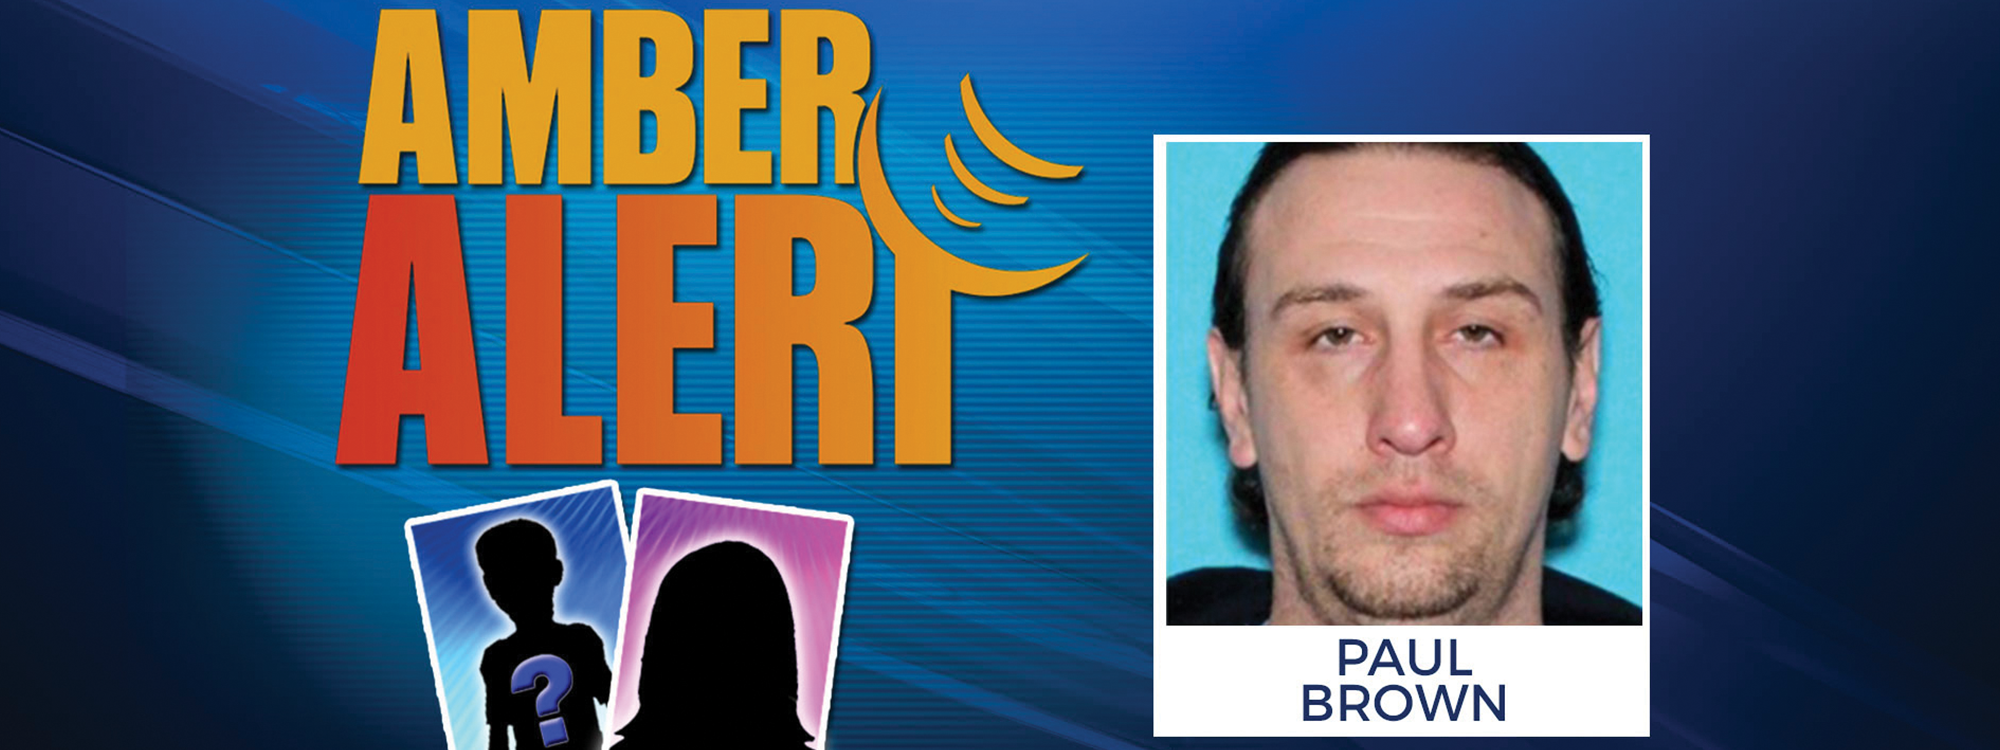 AMBER Alert graphic with suspect Paul Brown mugshot